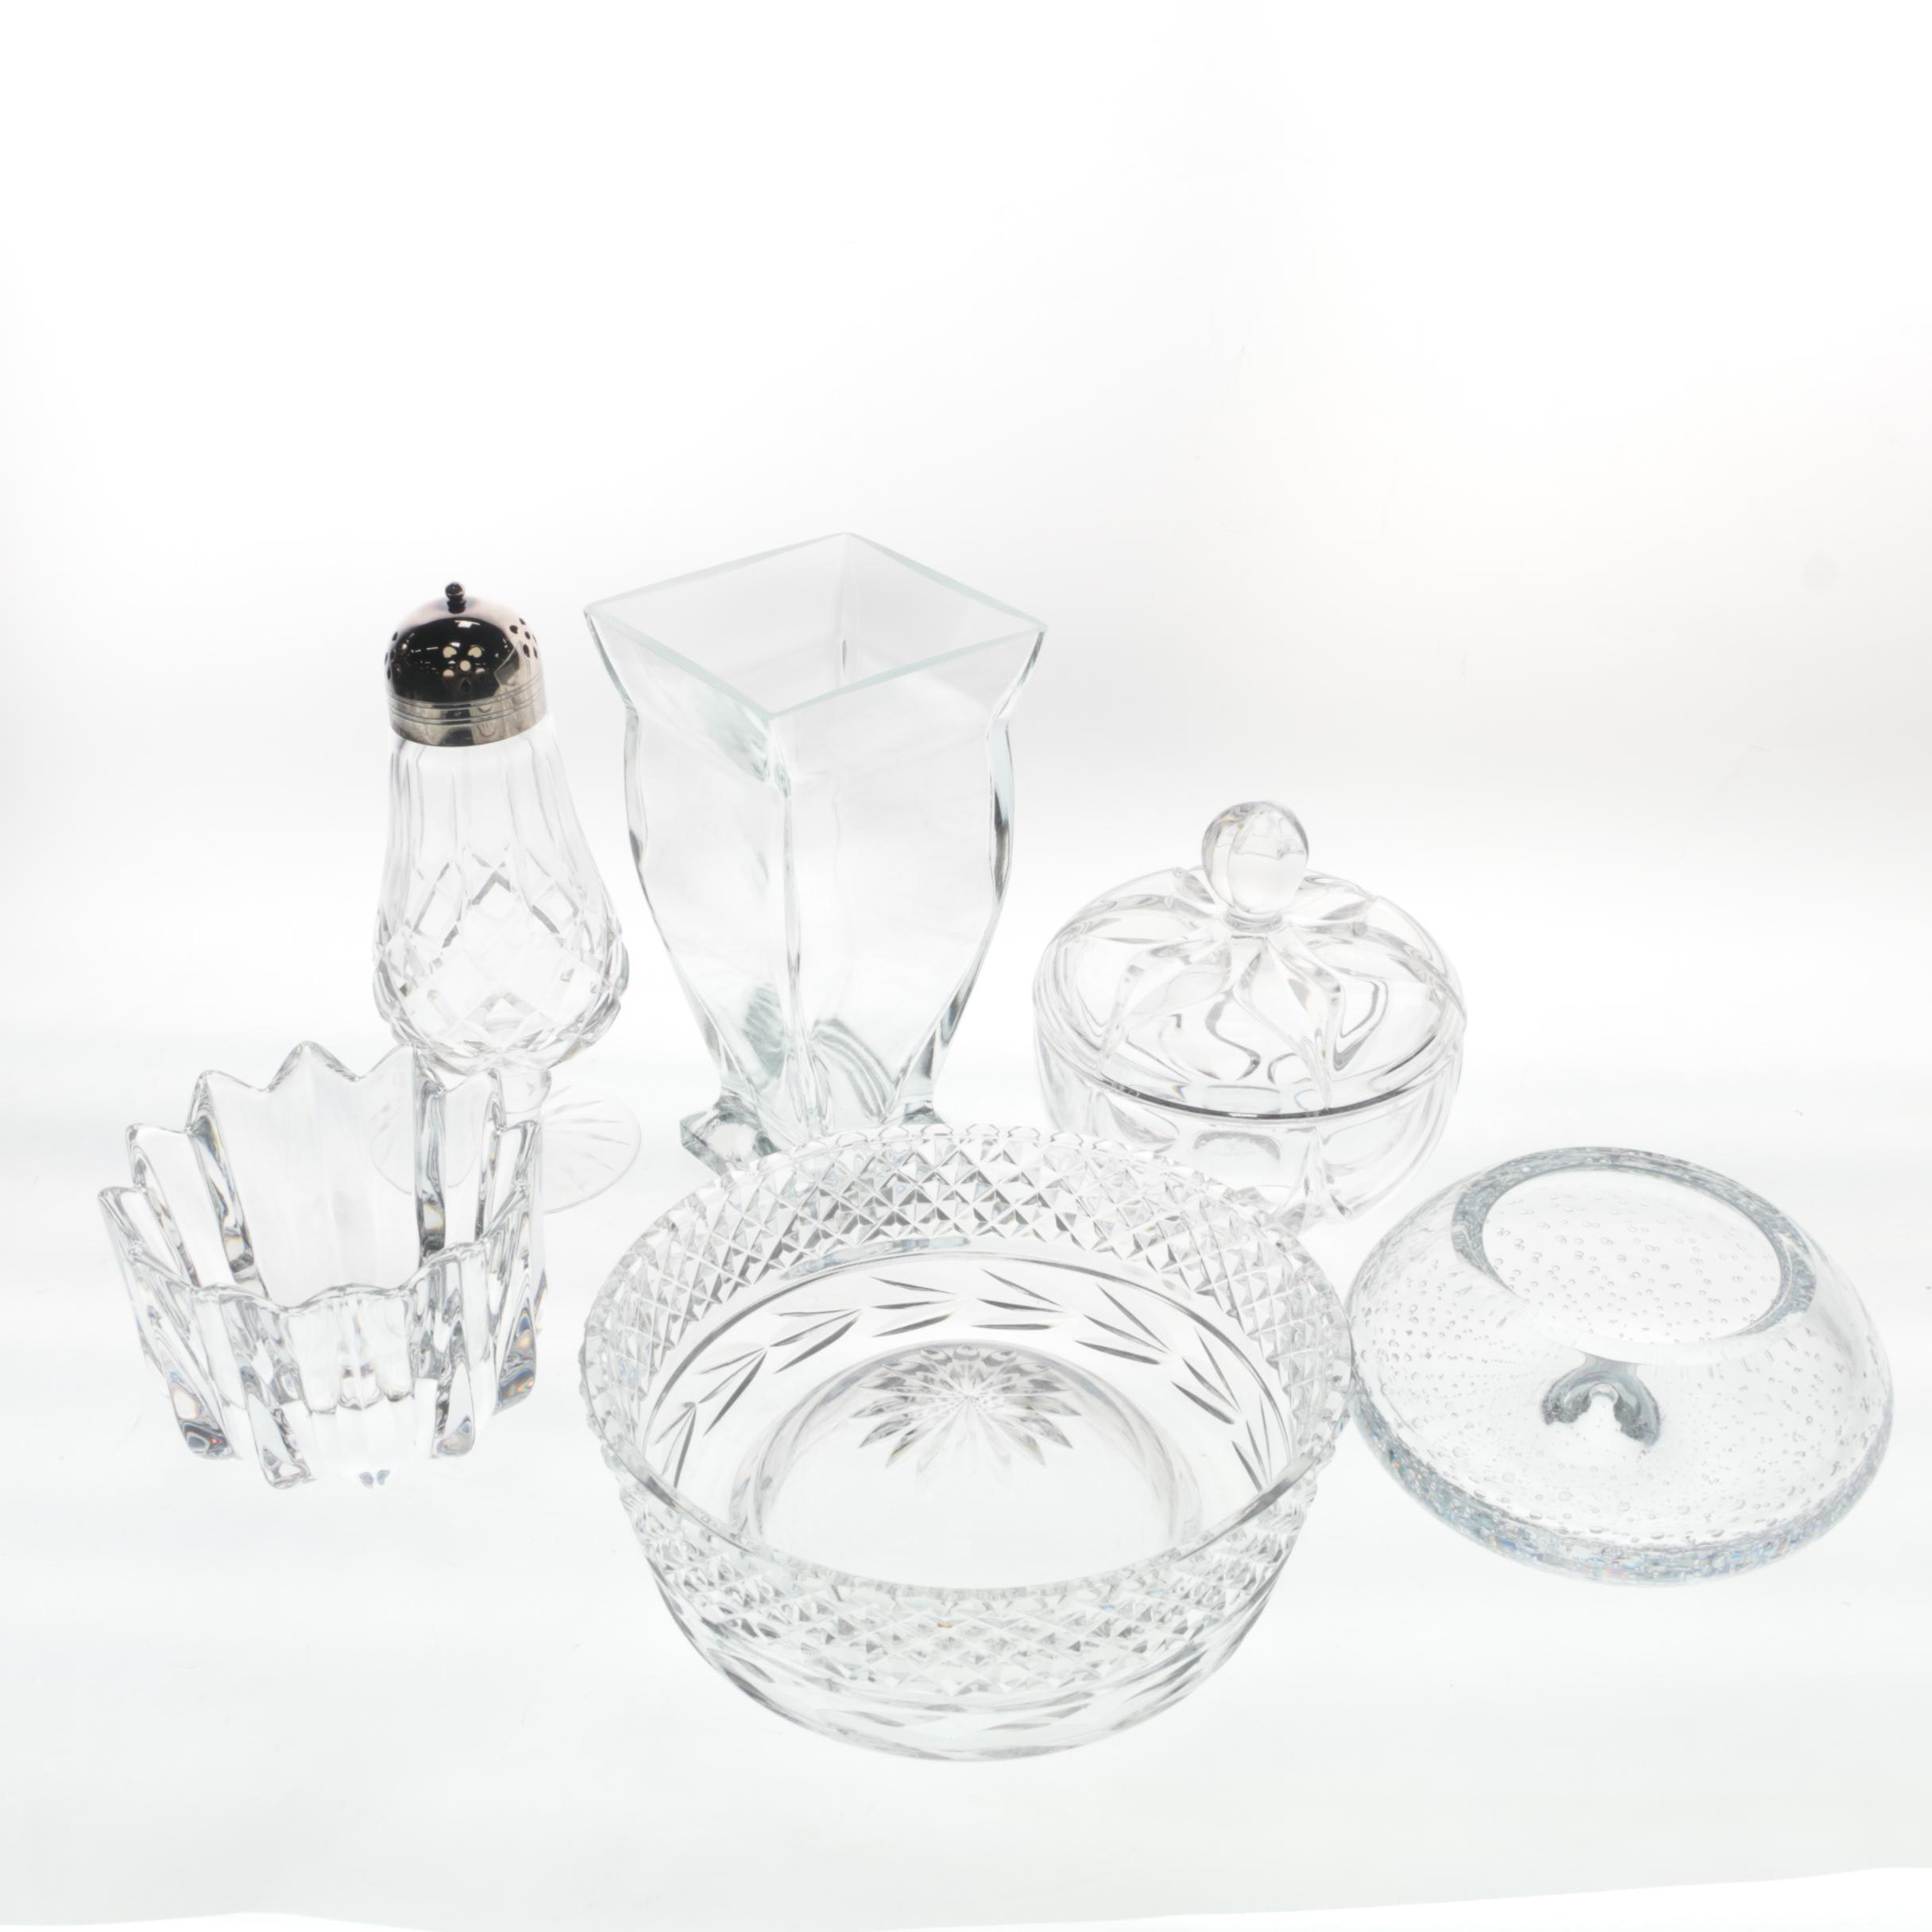 Crystal Serveware and Décor including Orrefors